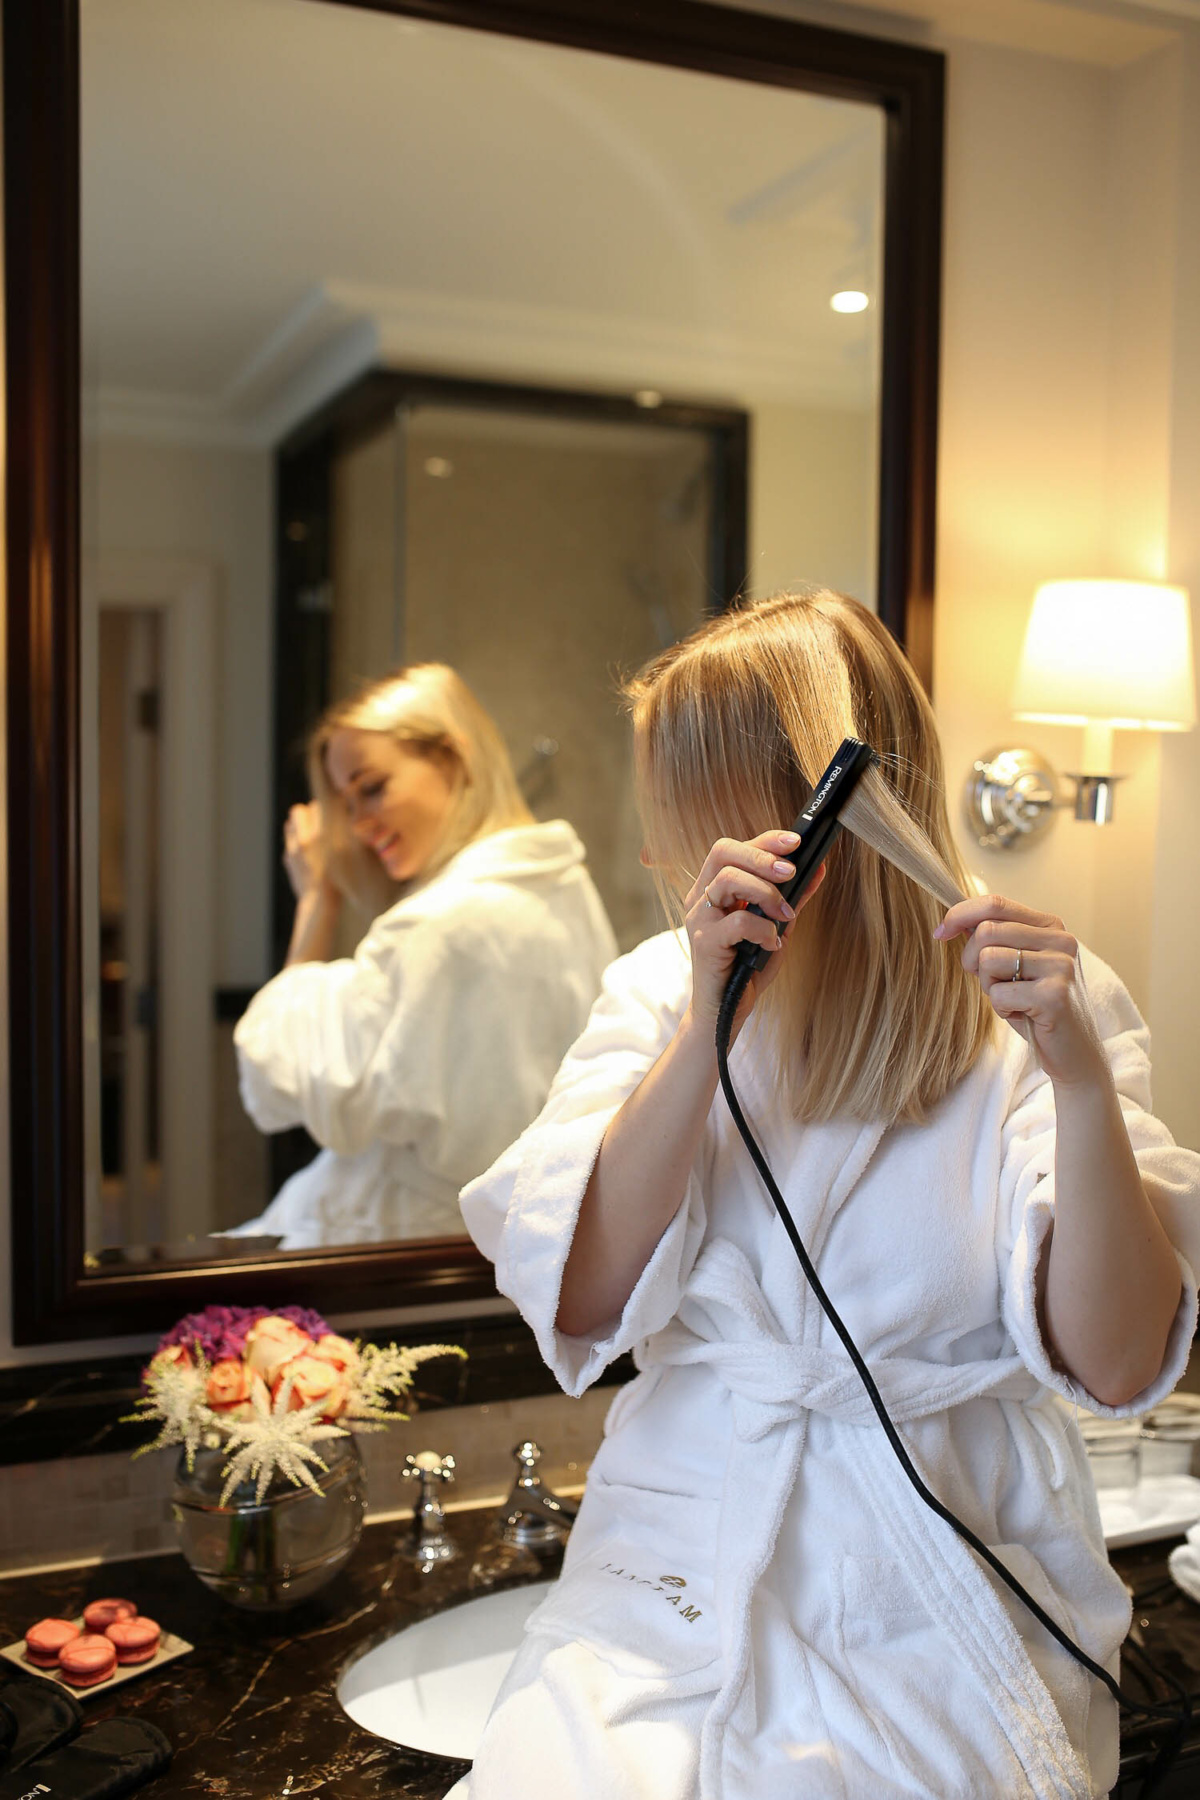 stylingliebe-beautyblog-muenchen-fashionblog-munich-beautyblogger-deutschland-fashionblogger-bloggerdeutschland-lifestyleblog-haarstyling-tools-on-the-go-5